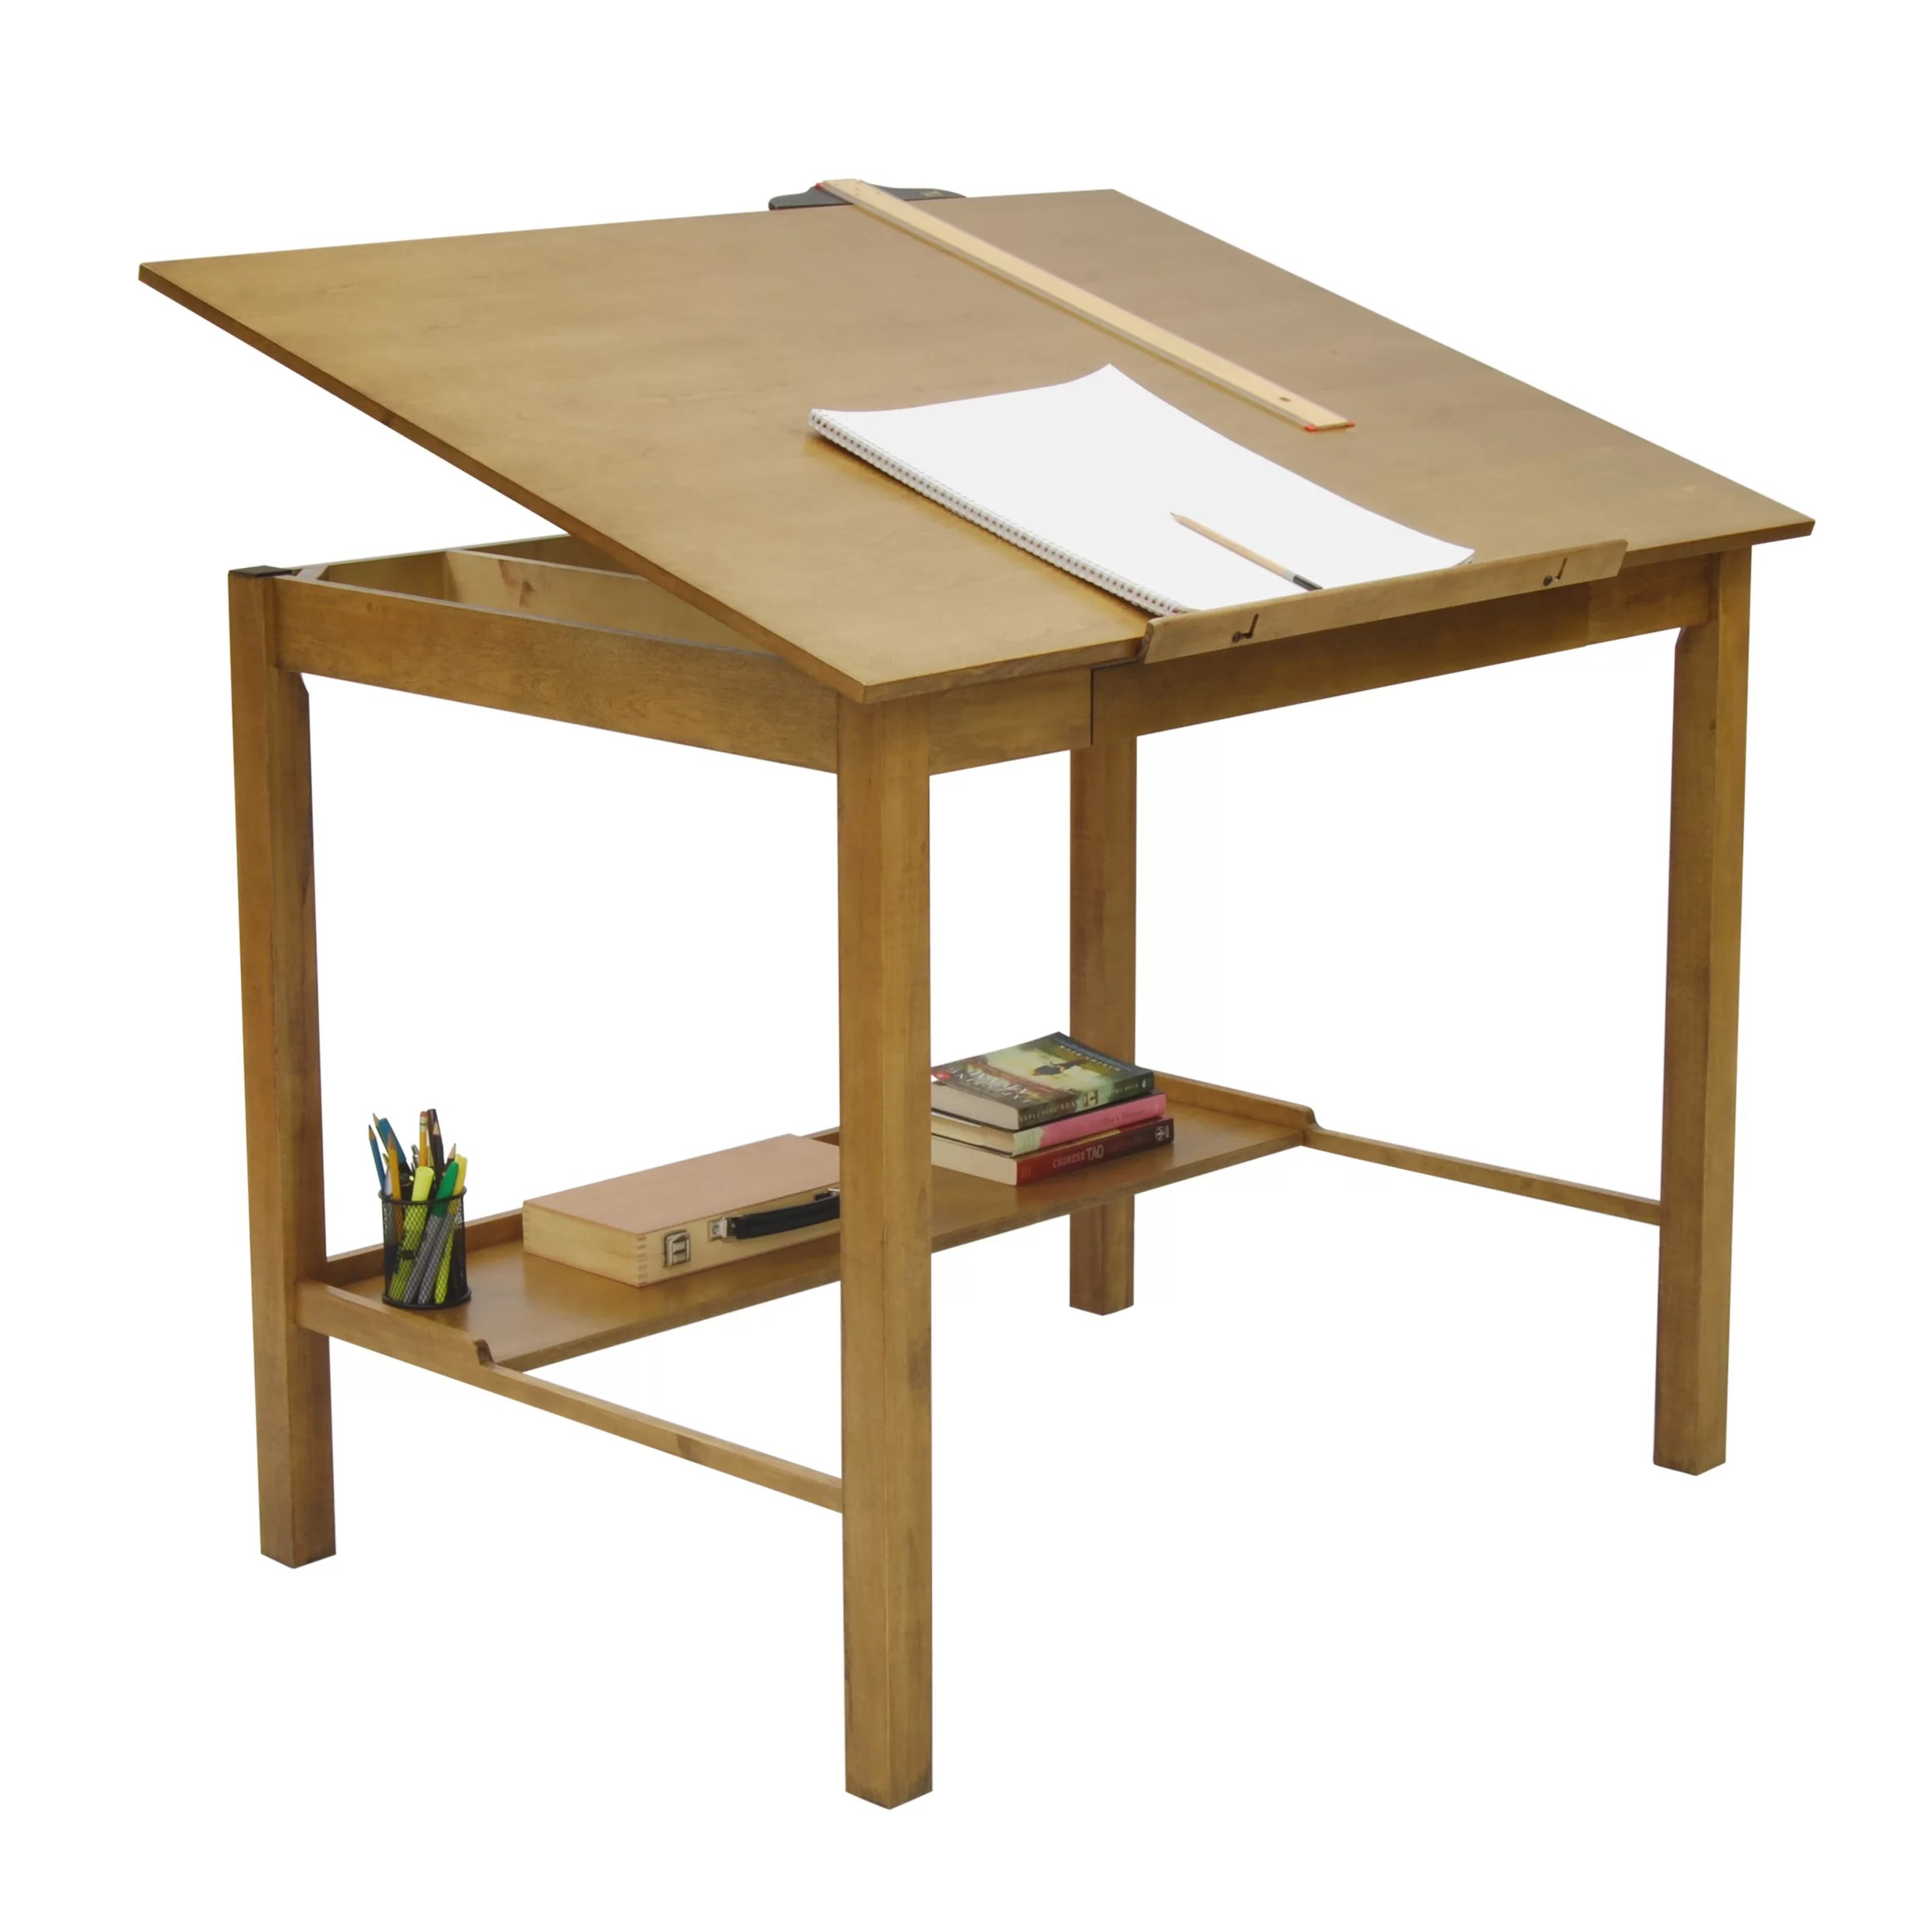 Drafting Table Design Studio Designs Americana Drafting Table And Reviews Wayfair Ca